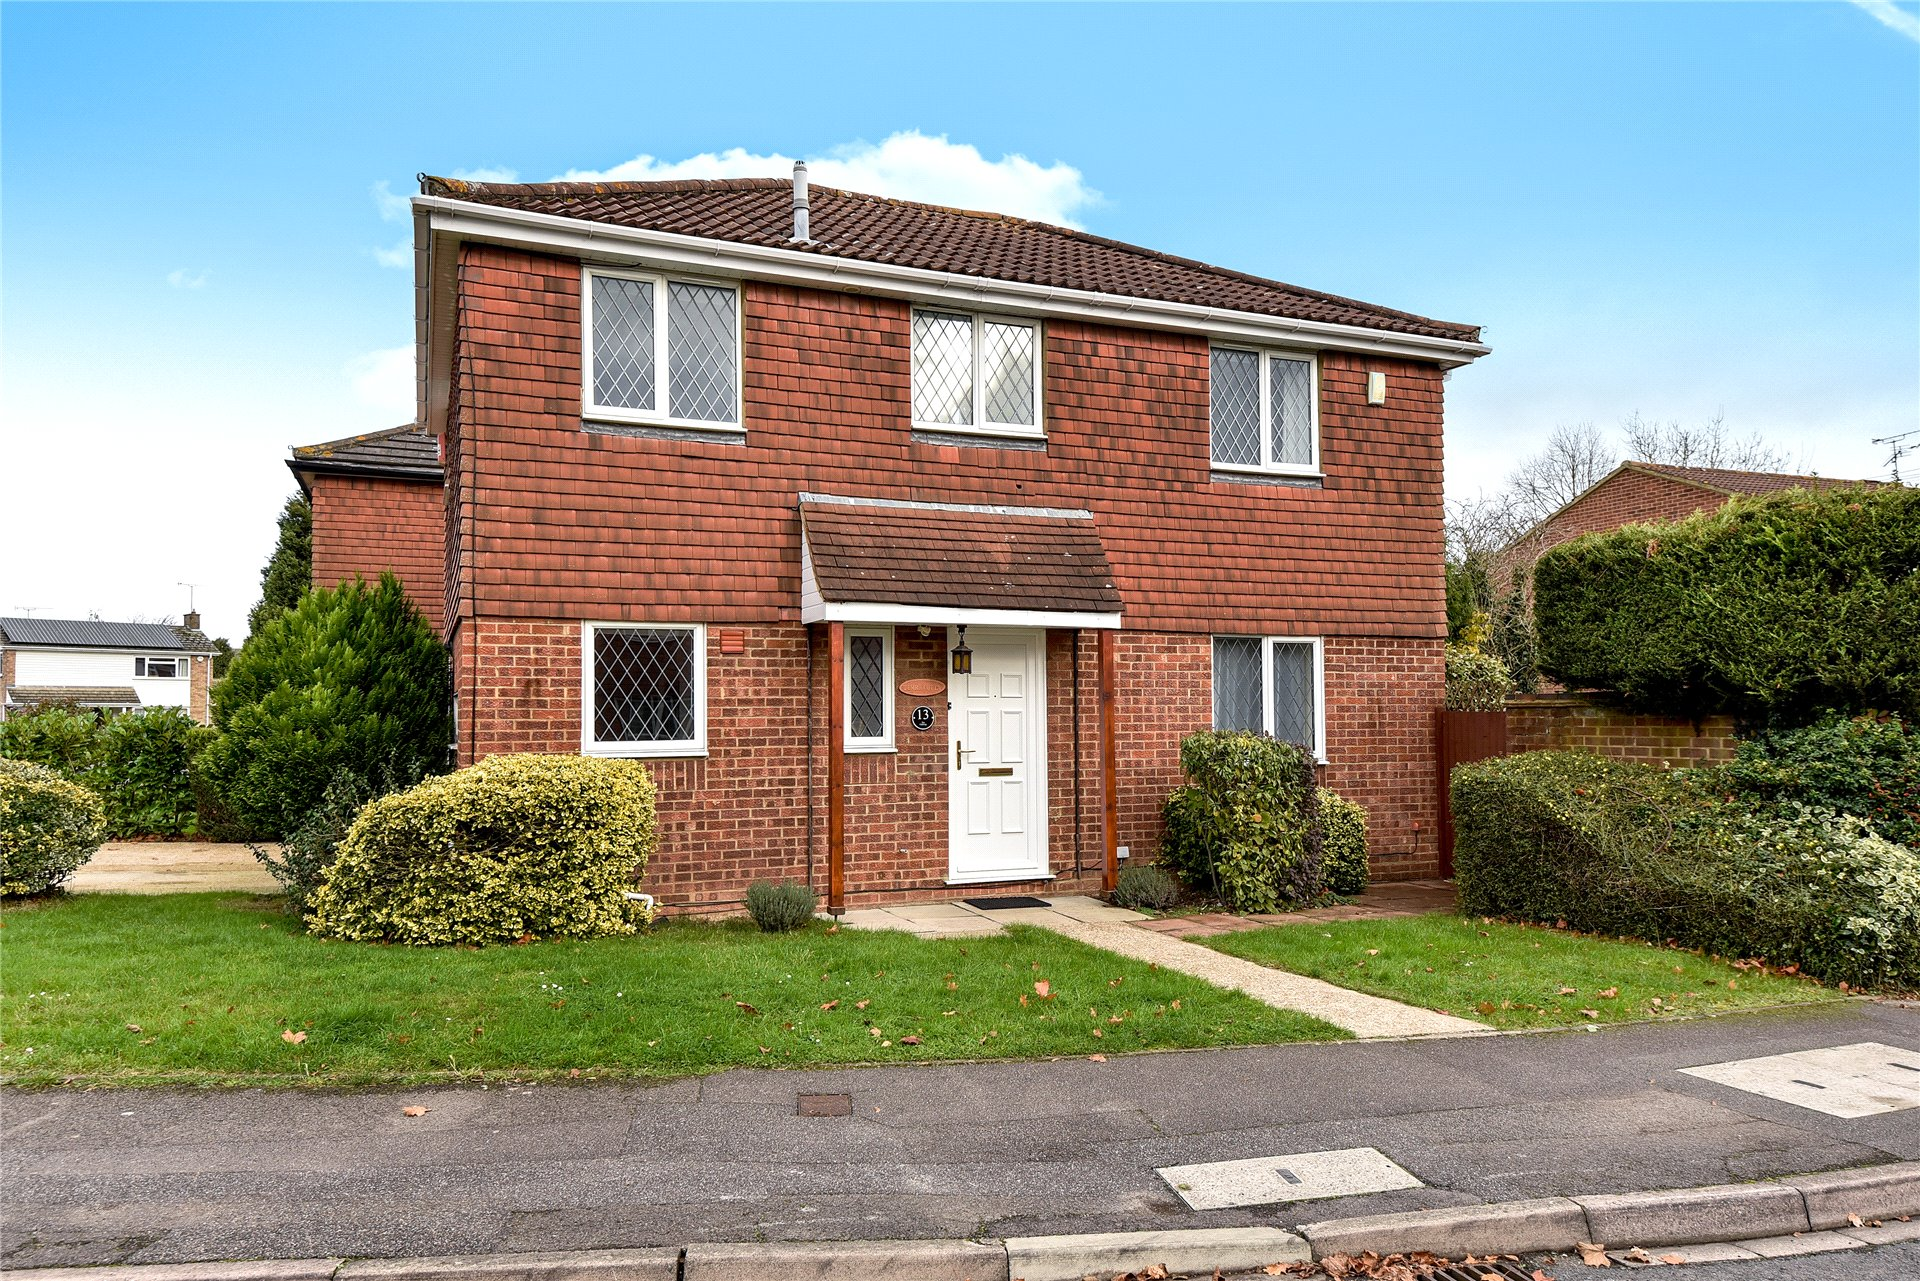 4 Bedrooms Detached House for sale in The Fairway, Maidenhead, Berkshire, SL6